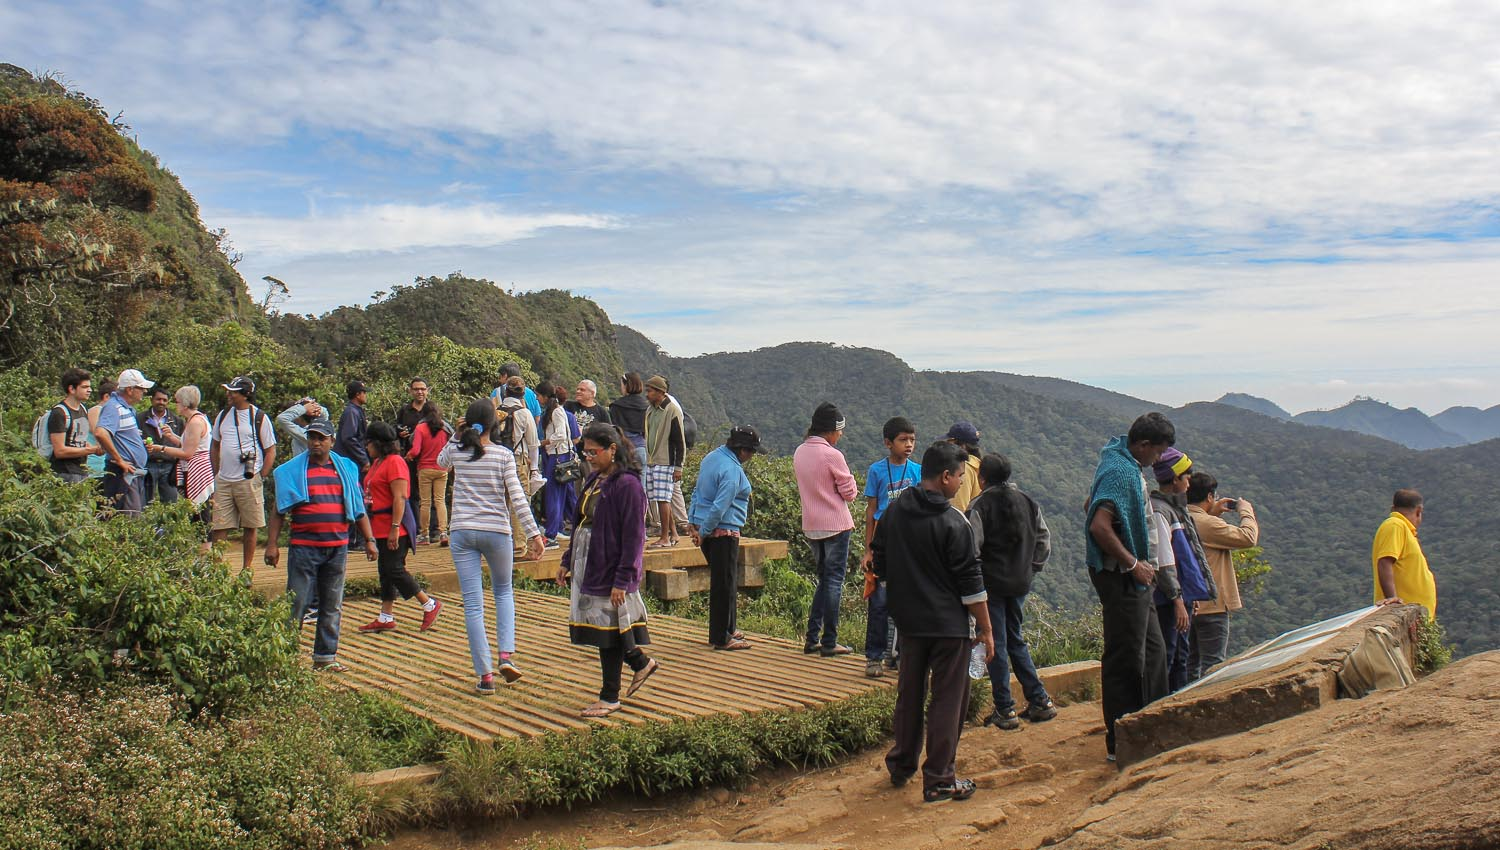 Hikers at the World's End lookout point. Image:  © Alan Williams